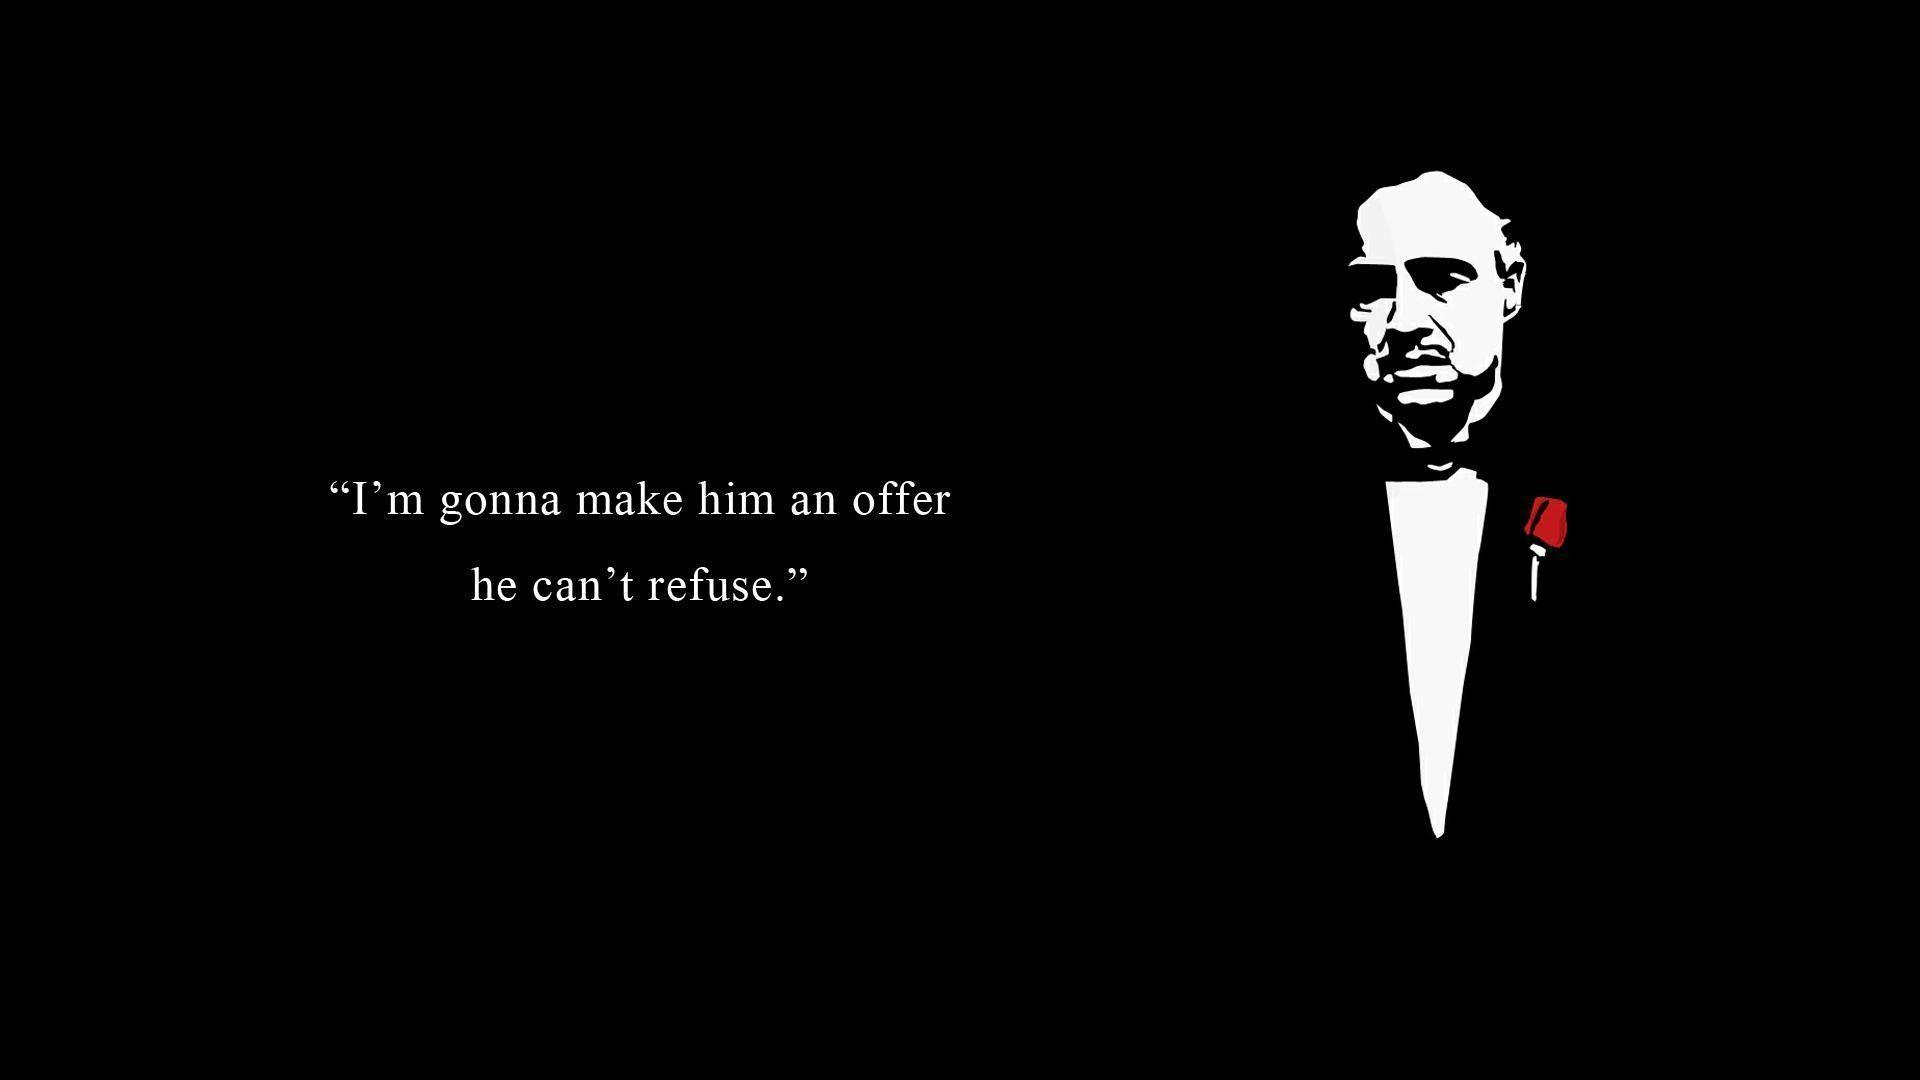 Godfather Movie Gang Mafia Entertainment Wallpaper